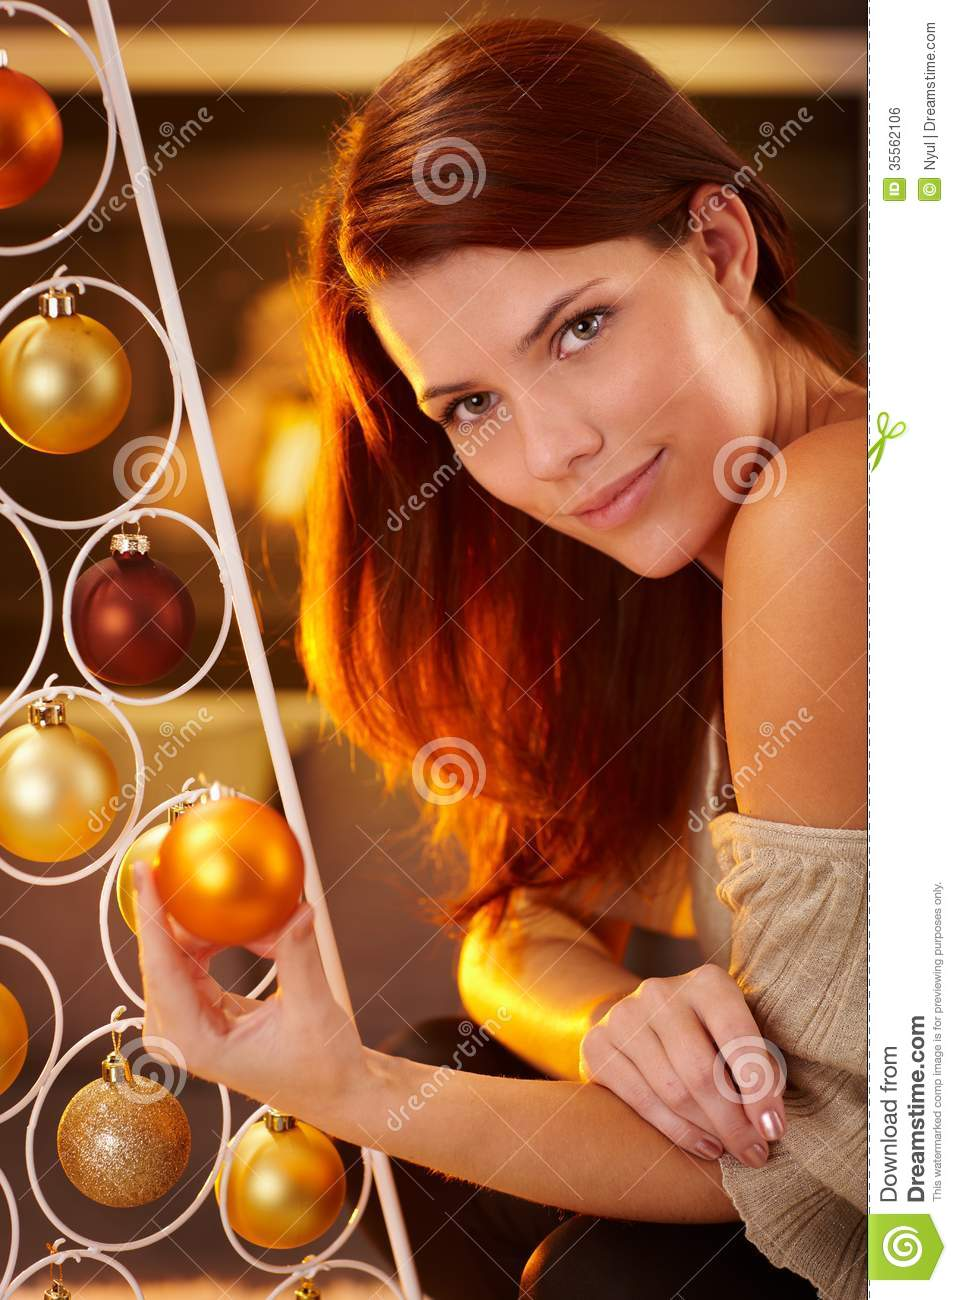 Cosy christmas portrait of smiling beauty by modern christmas tree